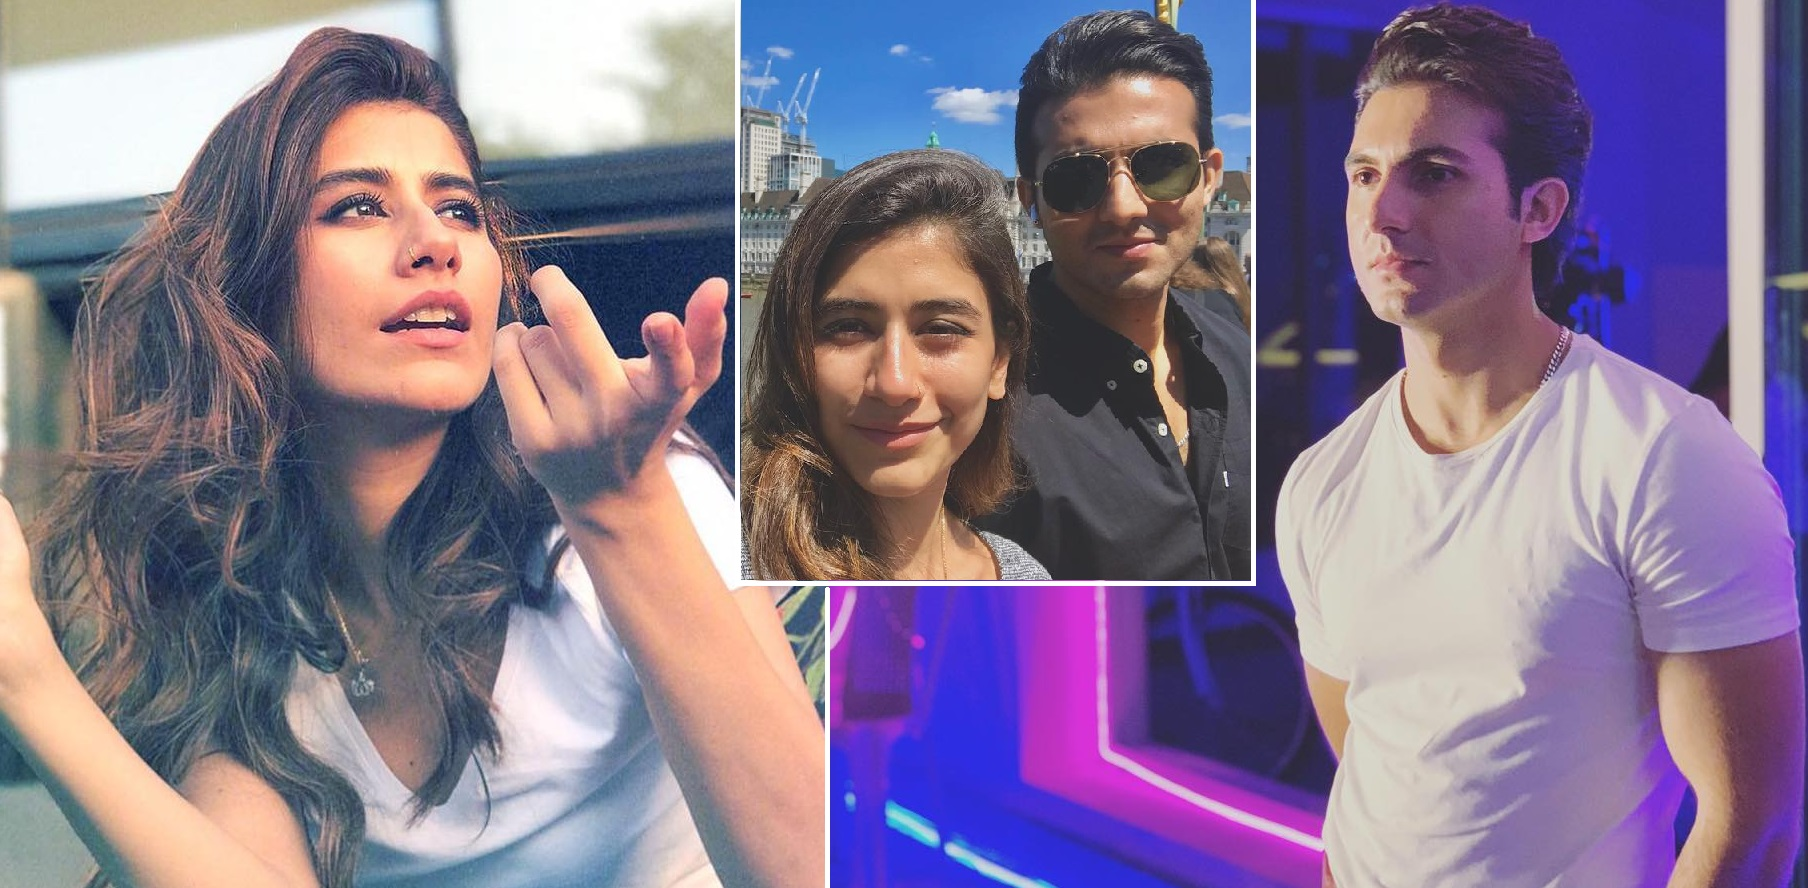 It's Not Sadaf Kanwal But Separated from Syra Due to Personal Differences 6 Months Ago, Shahroz